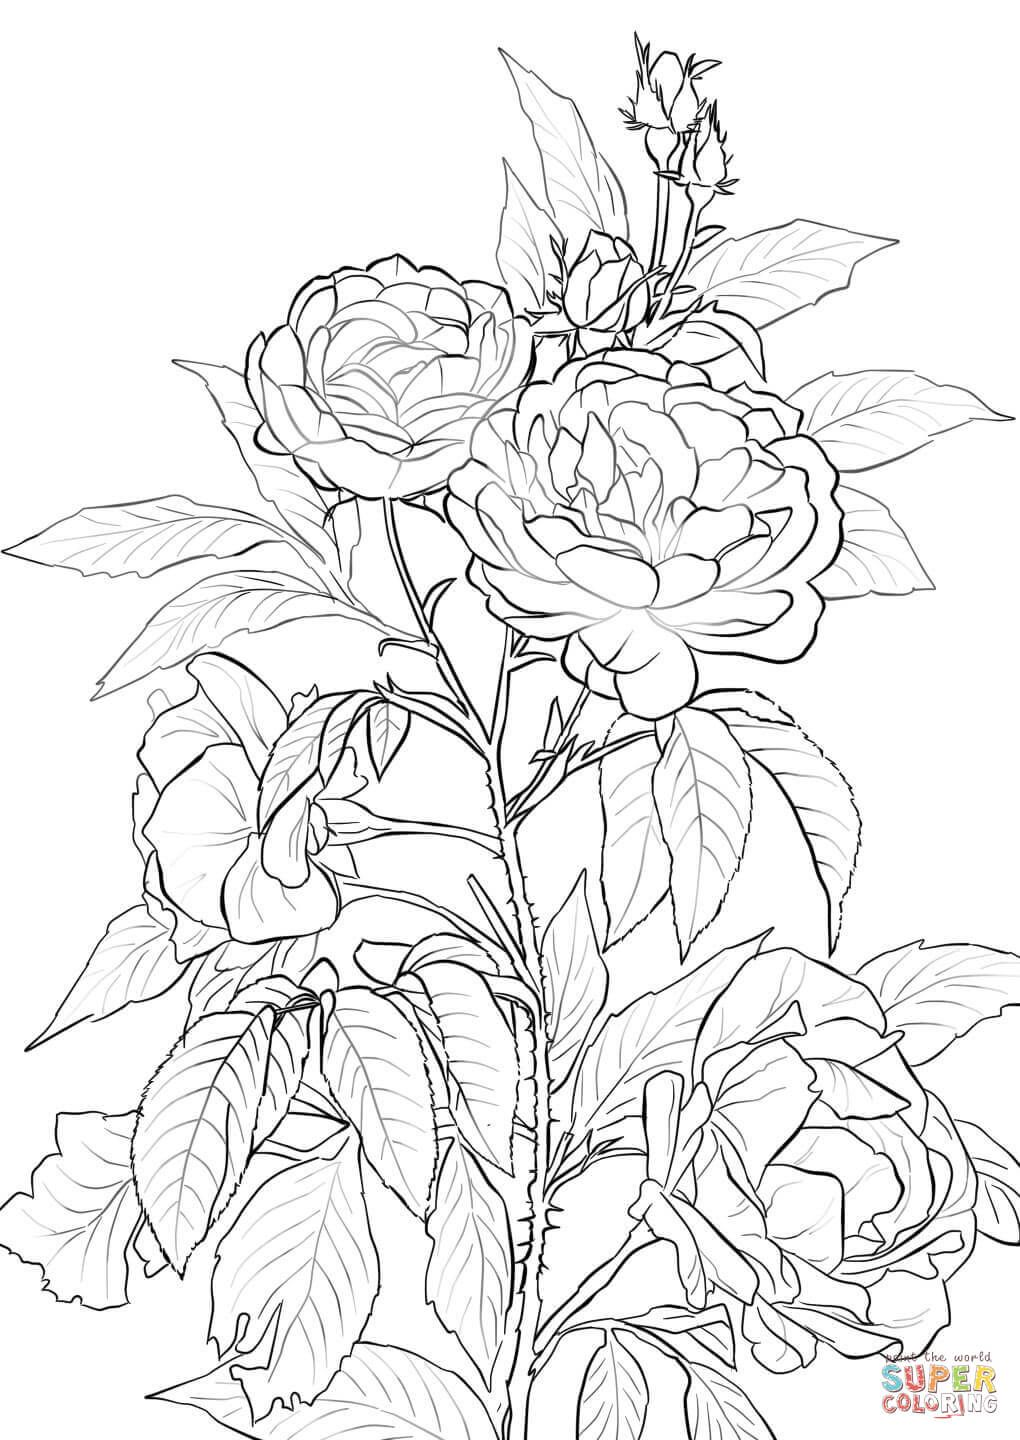 Rose Coloring Pages Printable | Coloring pages | Pinterest | Rose ...